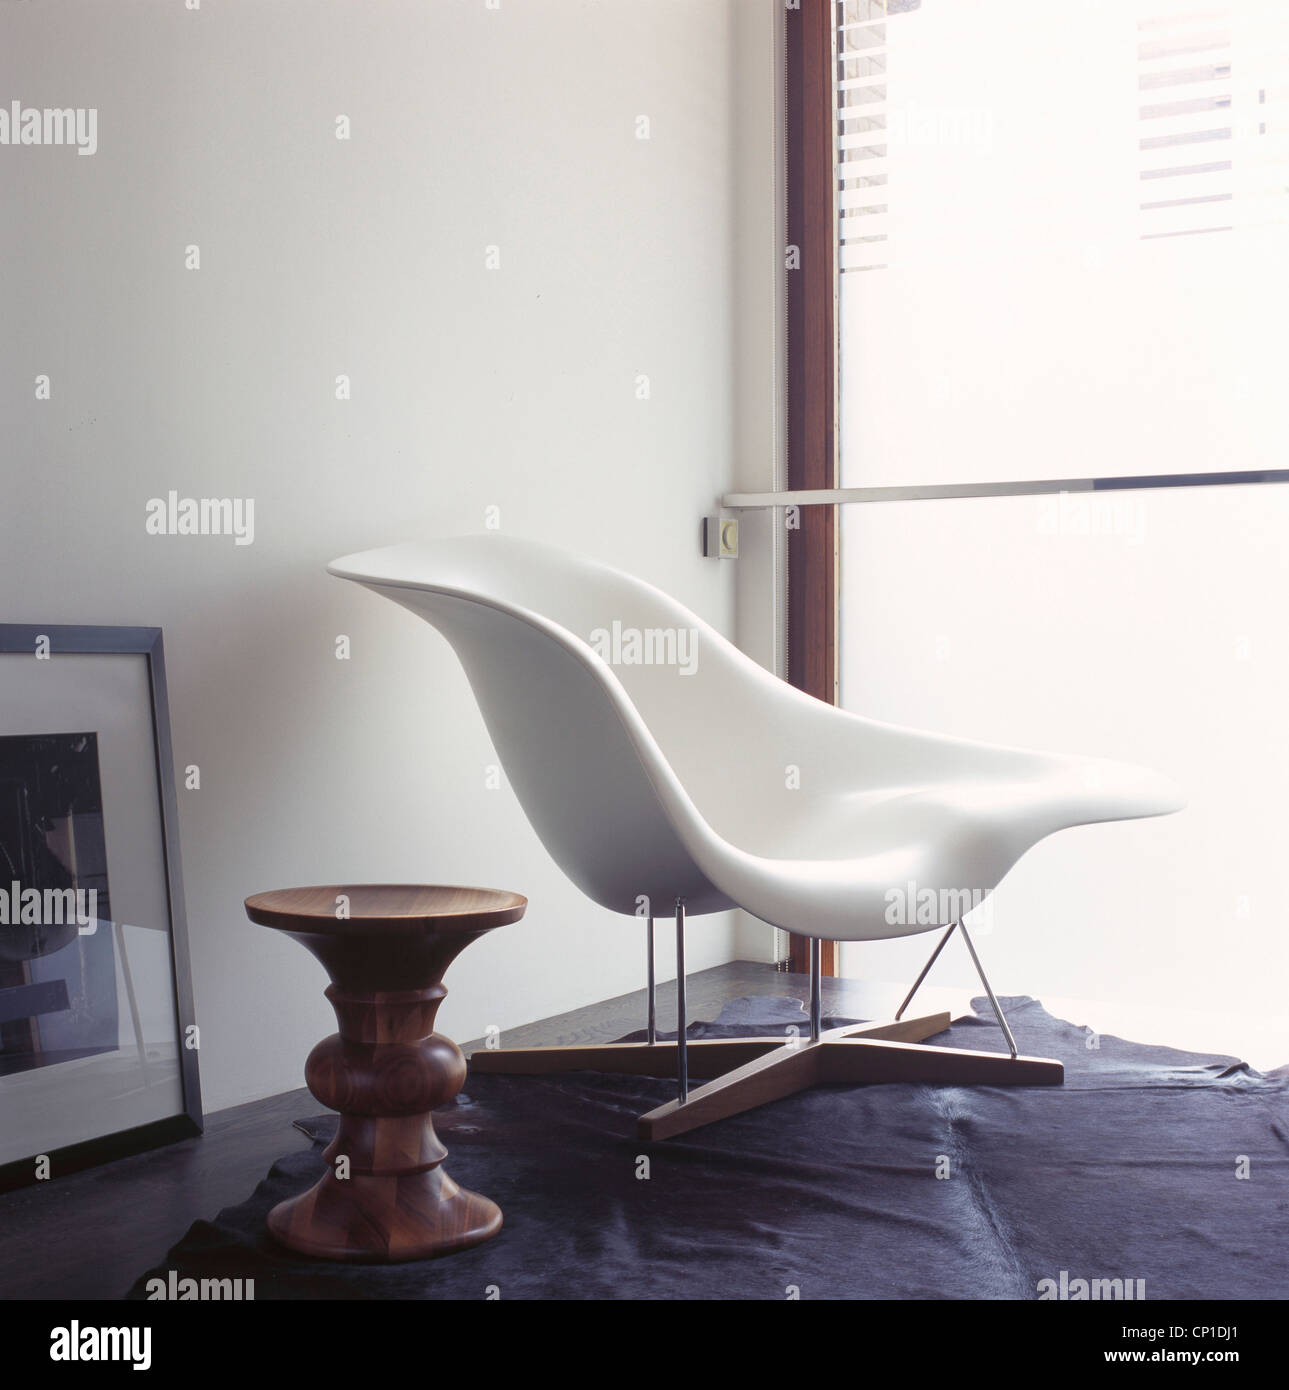 Charles And Ray Eames Le Chaise Next To Window   Stock Image